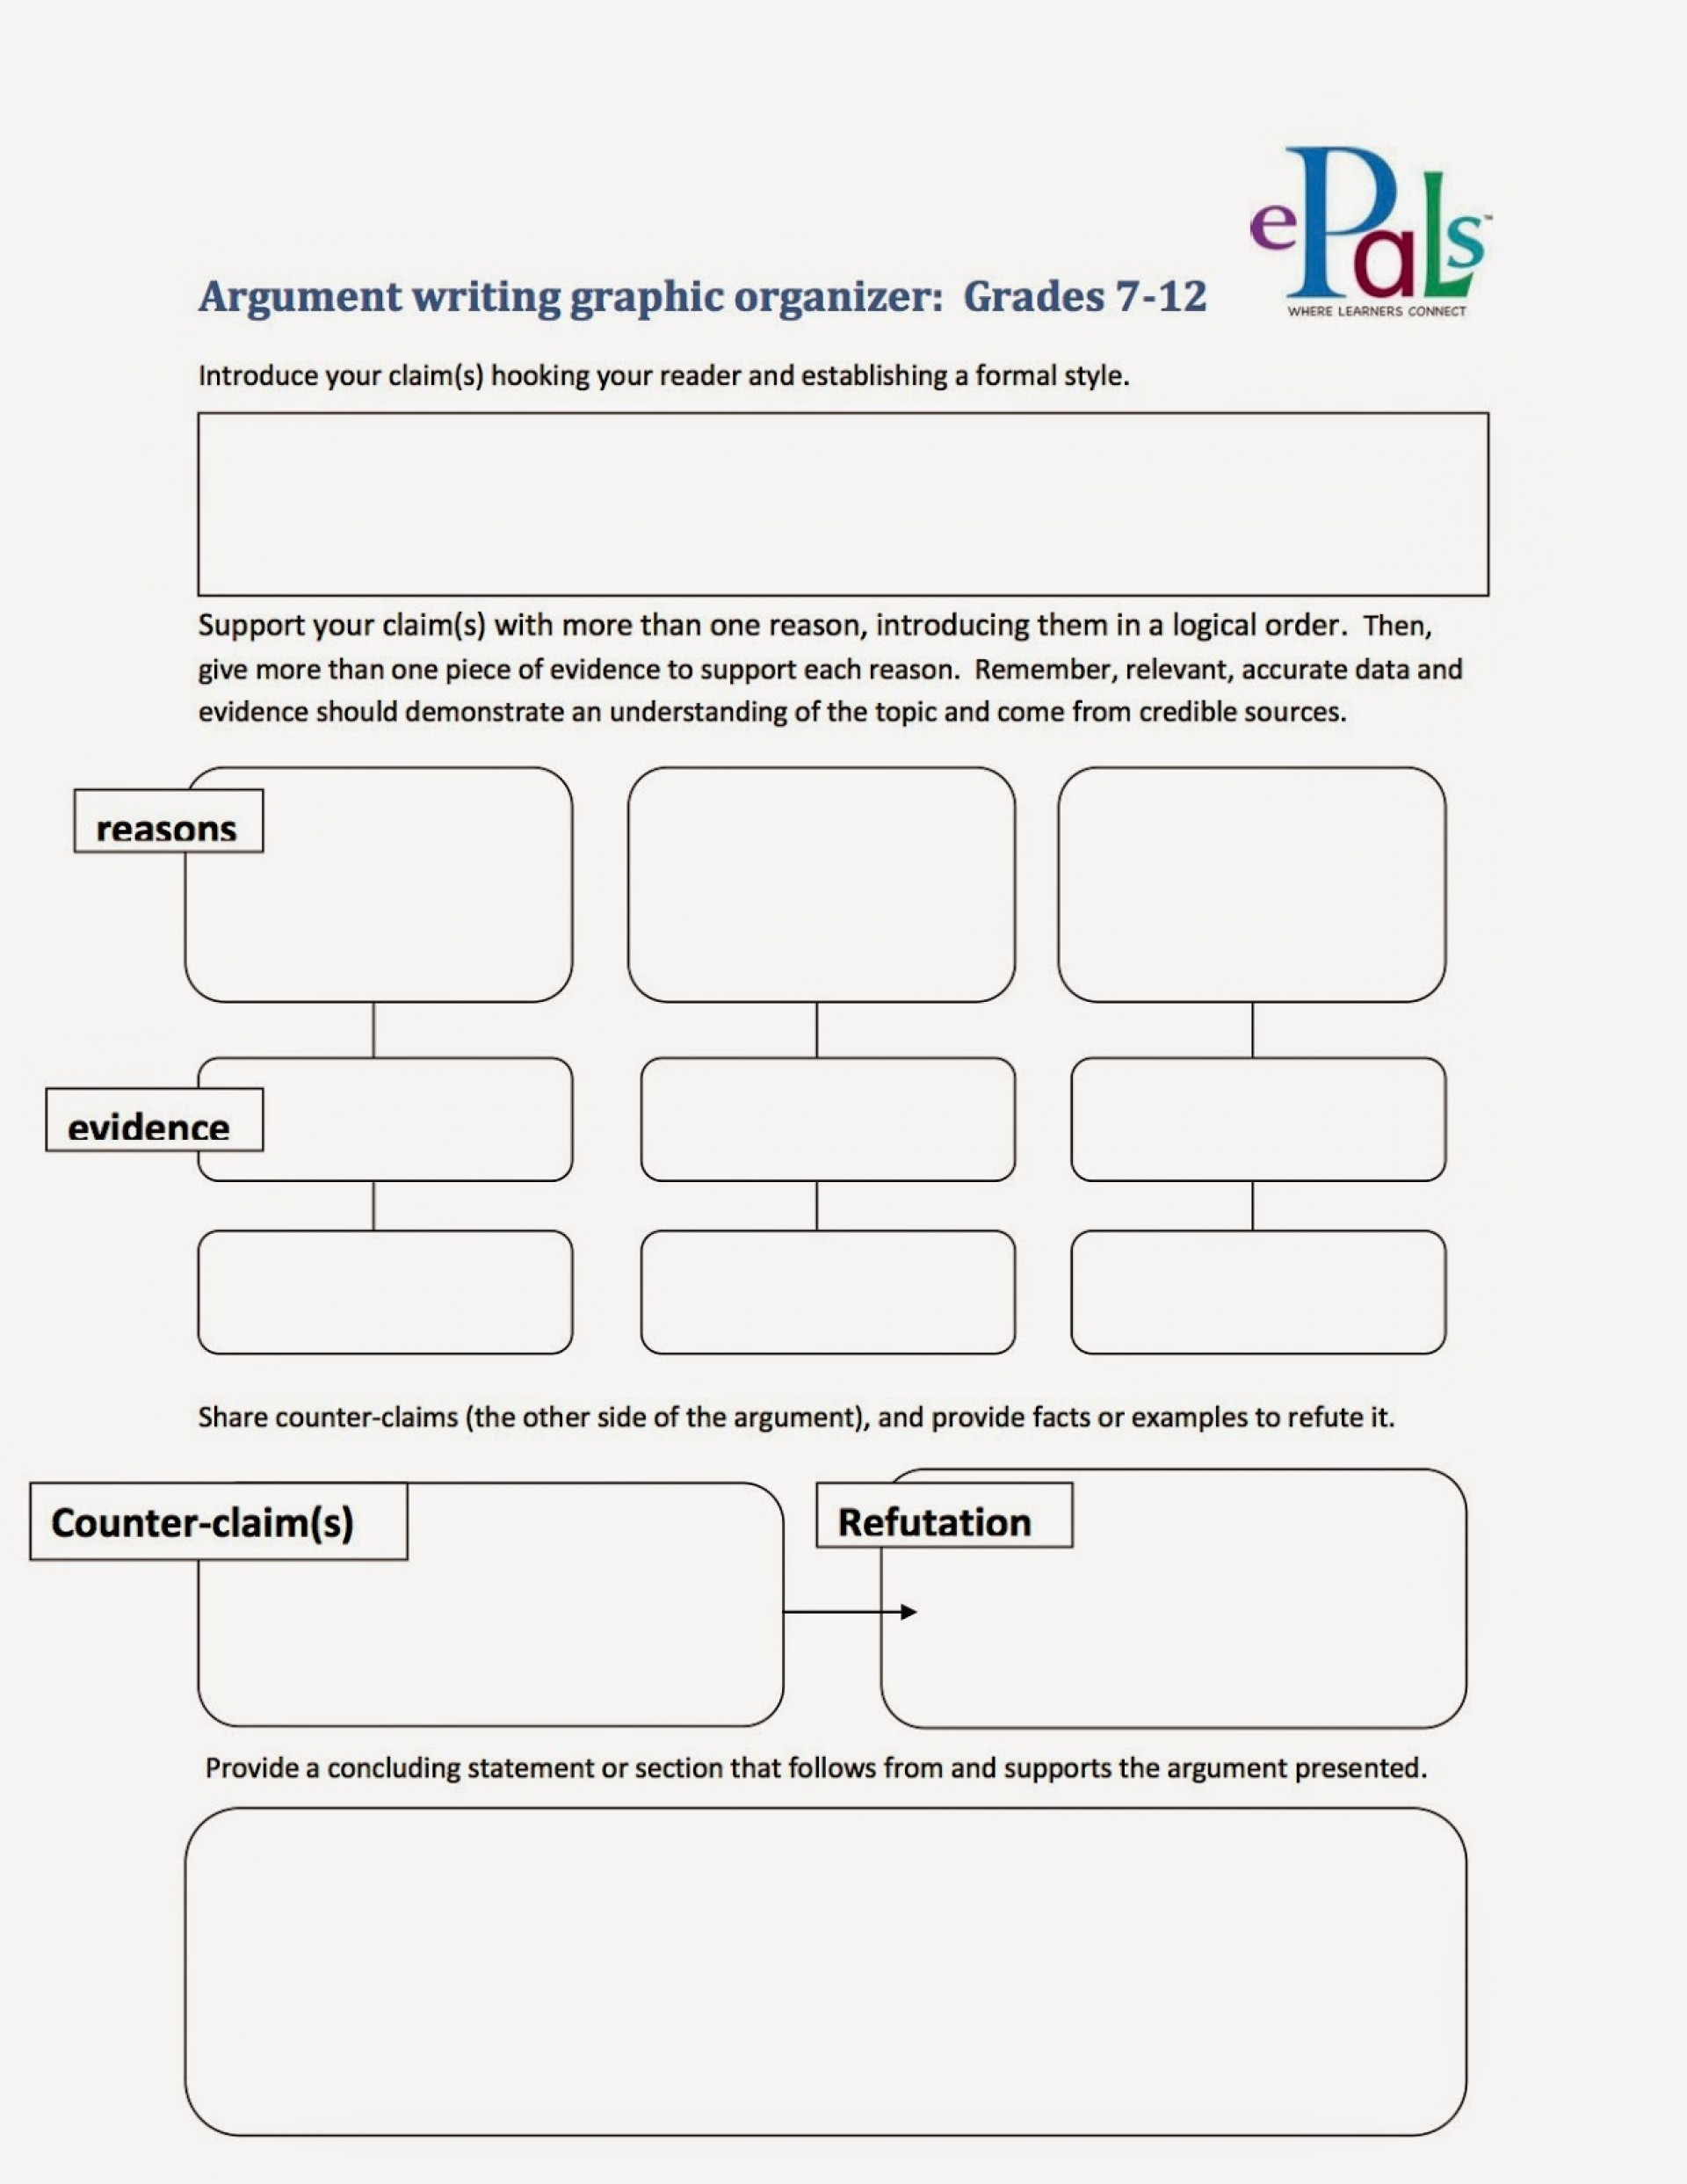 003 Argumentgraphicorganizer2bcopy Essay Example Argumentative Graphic Incredible Organizer Persuasive High School Pdf Common Core 1920